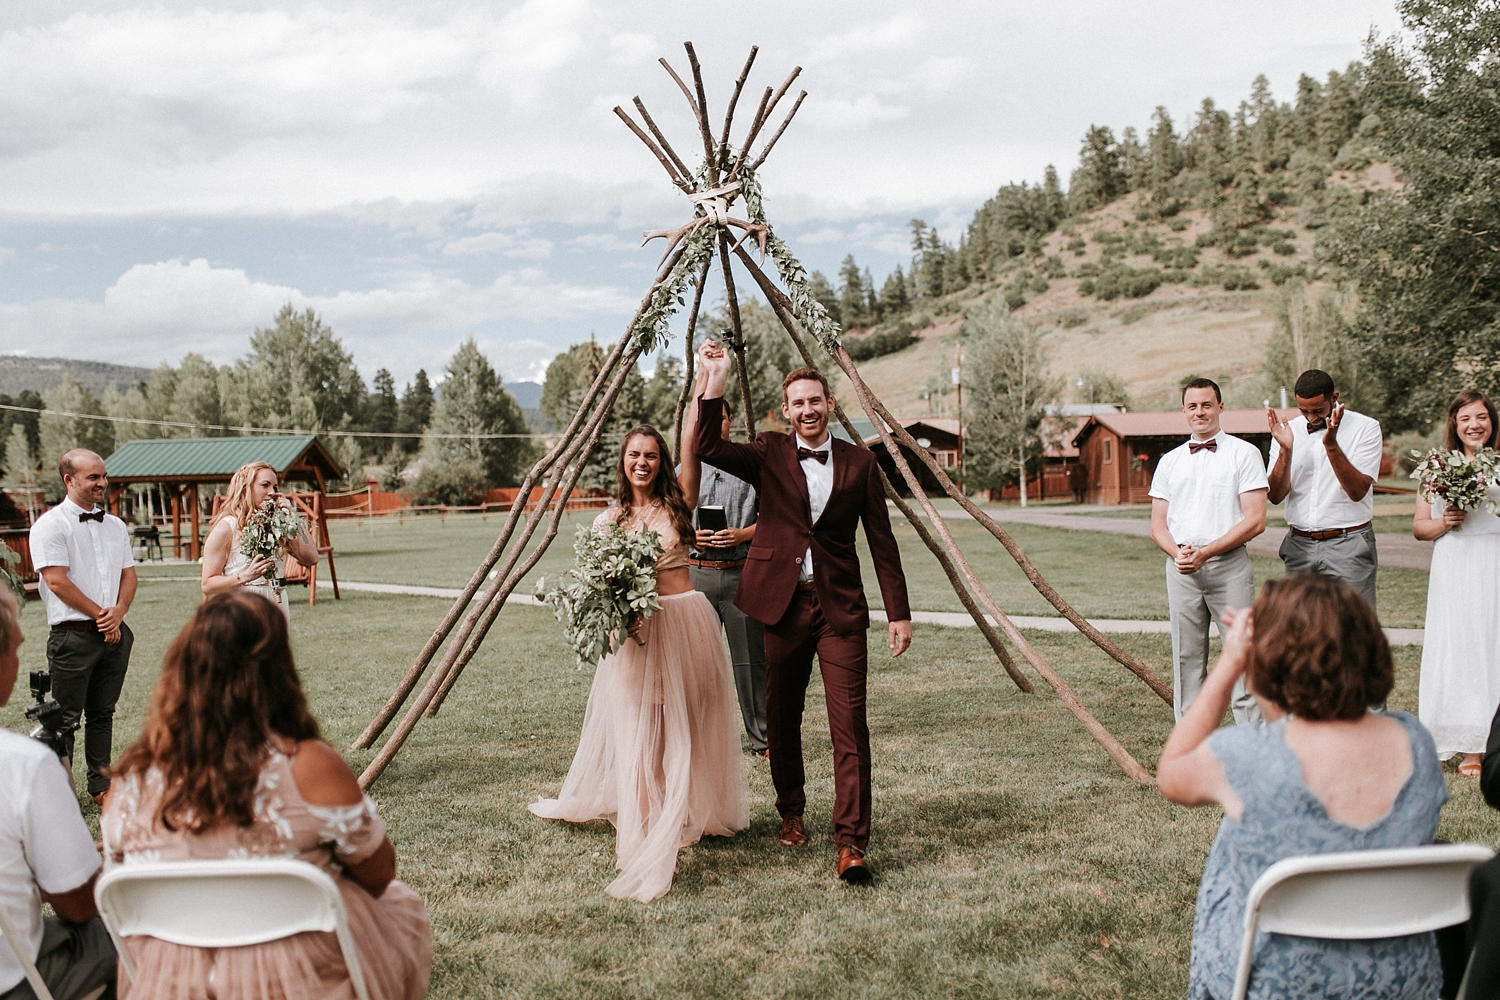 Alicia+lucia+photography+-+albuquerque+wedding+photographer+-+santa+fe+wedding+photography+-+new+mexico+wedding+photographer+-+pagosa+springs+wedding+-+destination+wedding_0030.jpg